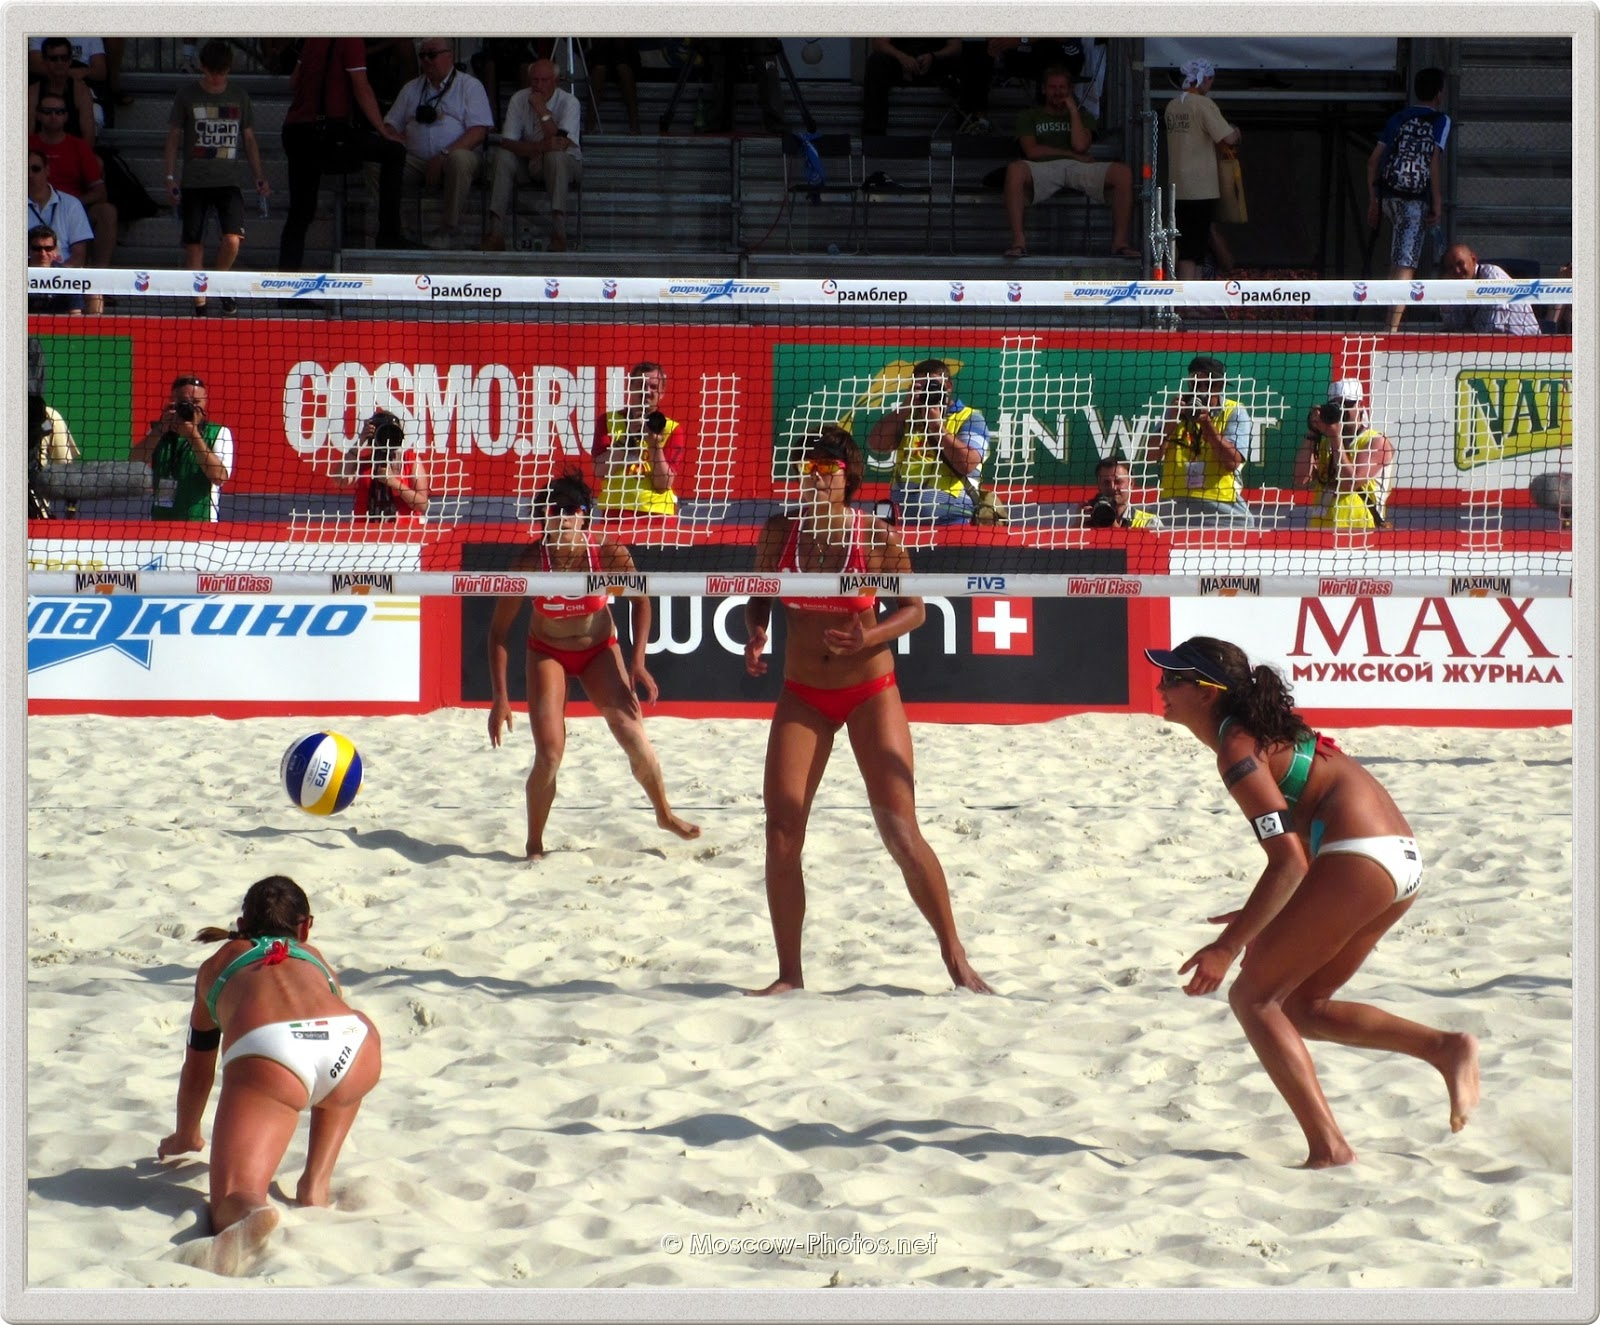 Serve Reception of Italian Beach Volley Team